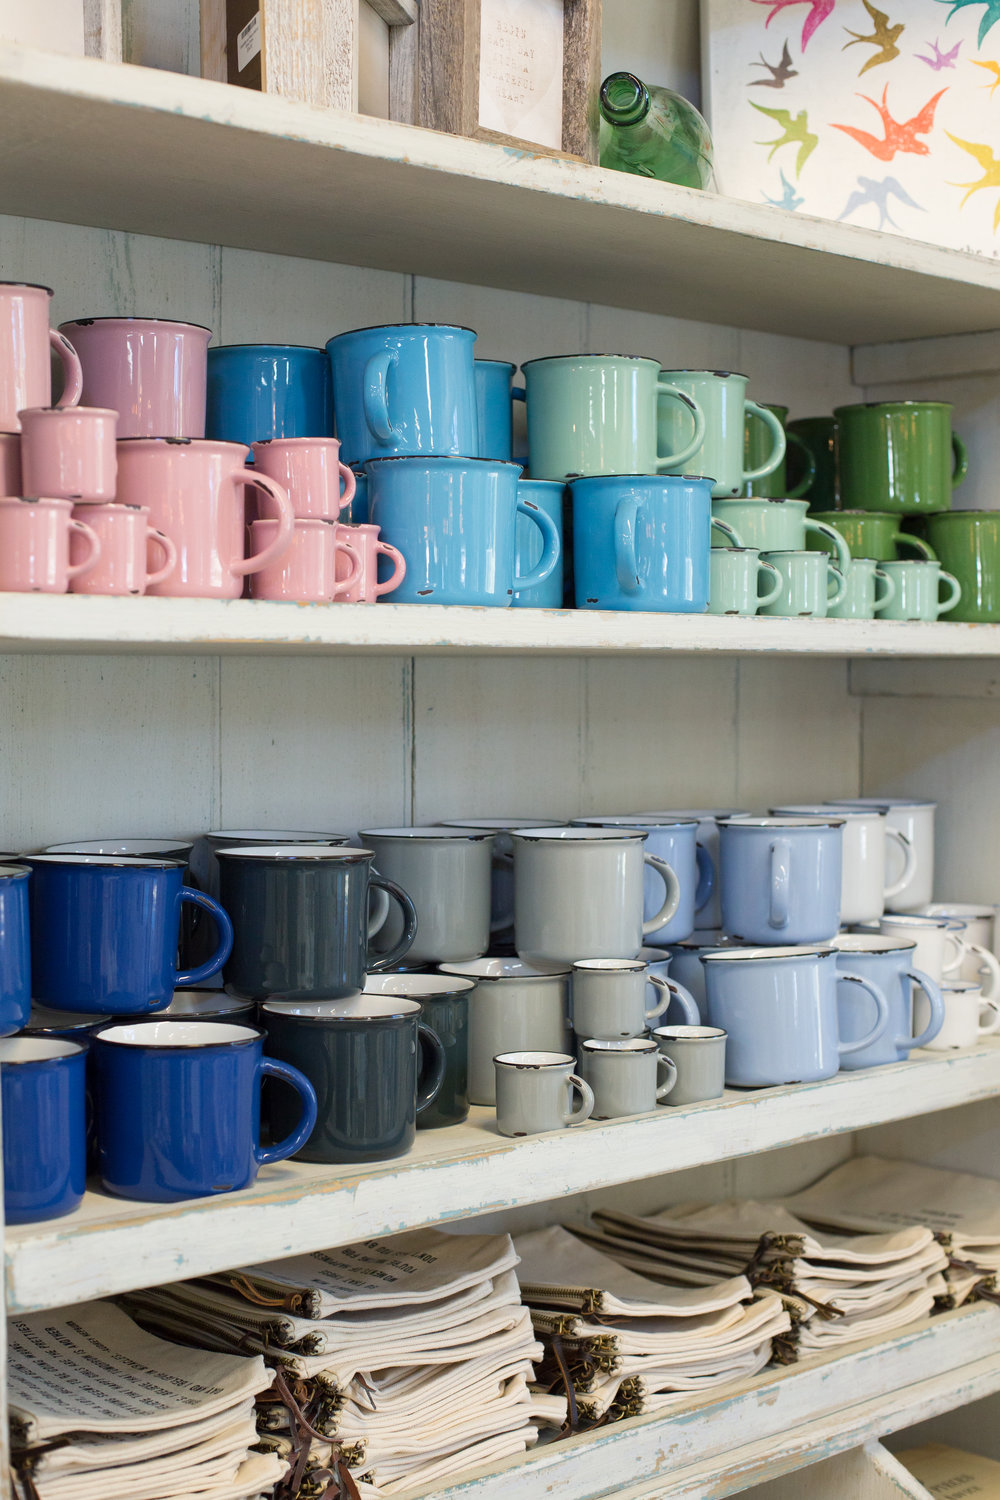 Camping mugs, kitchenware